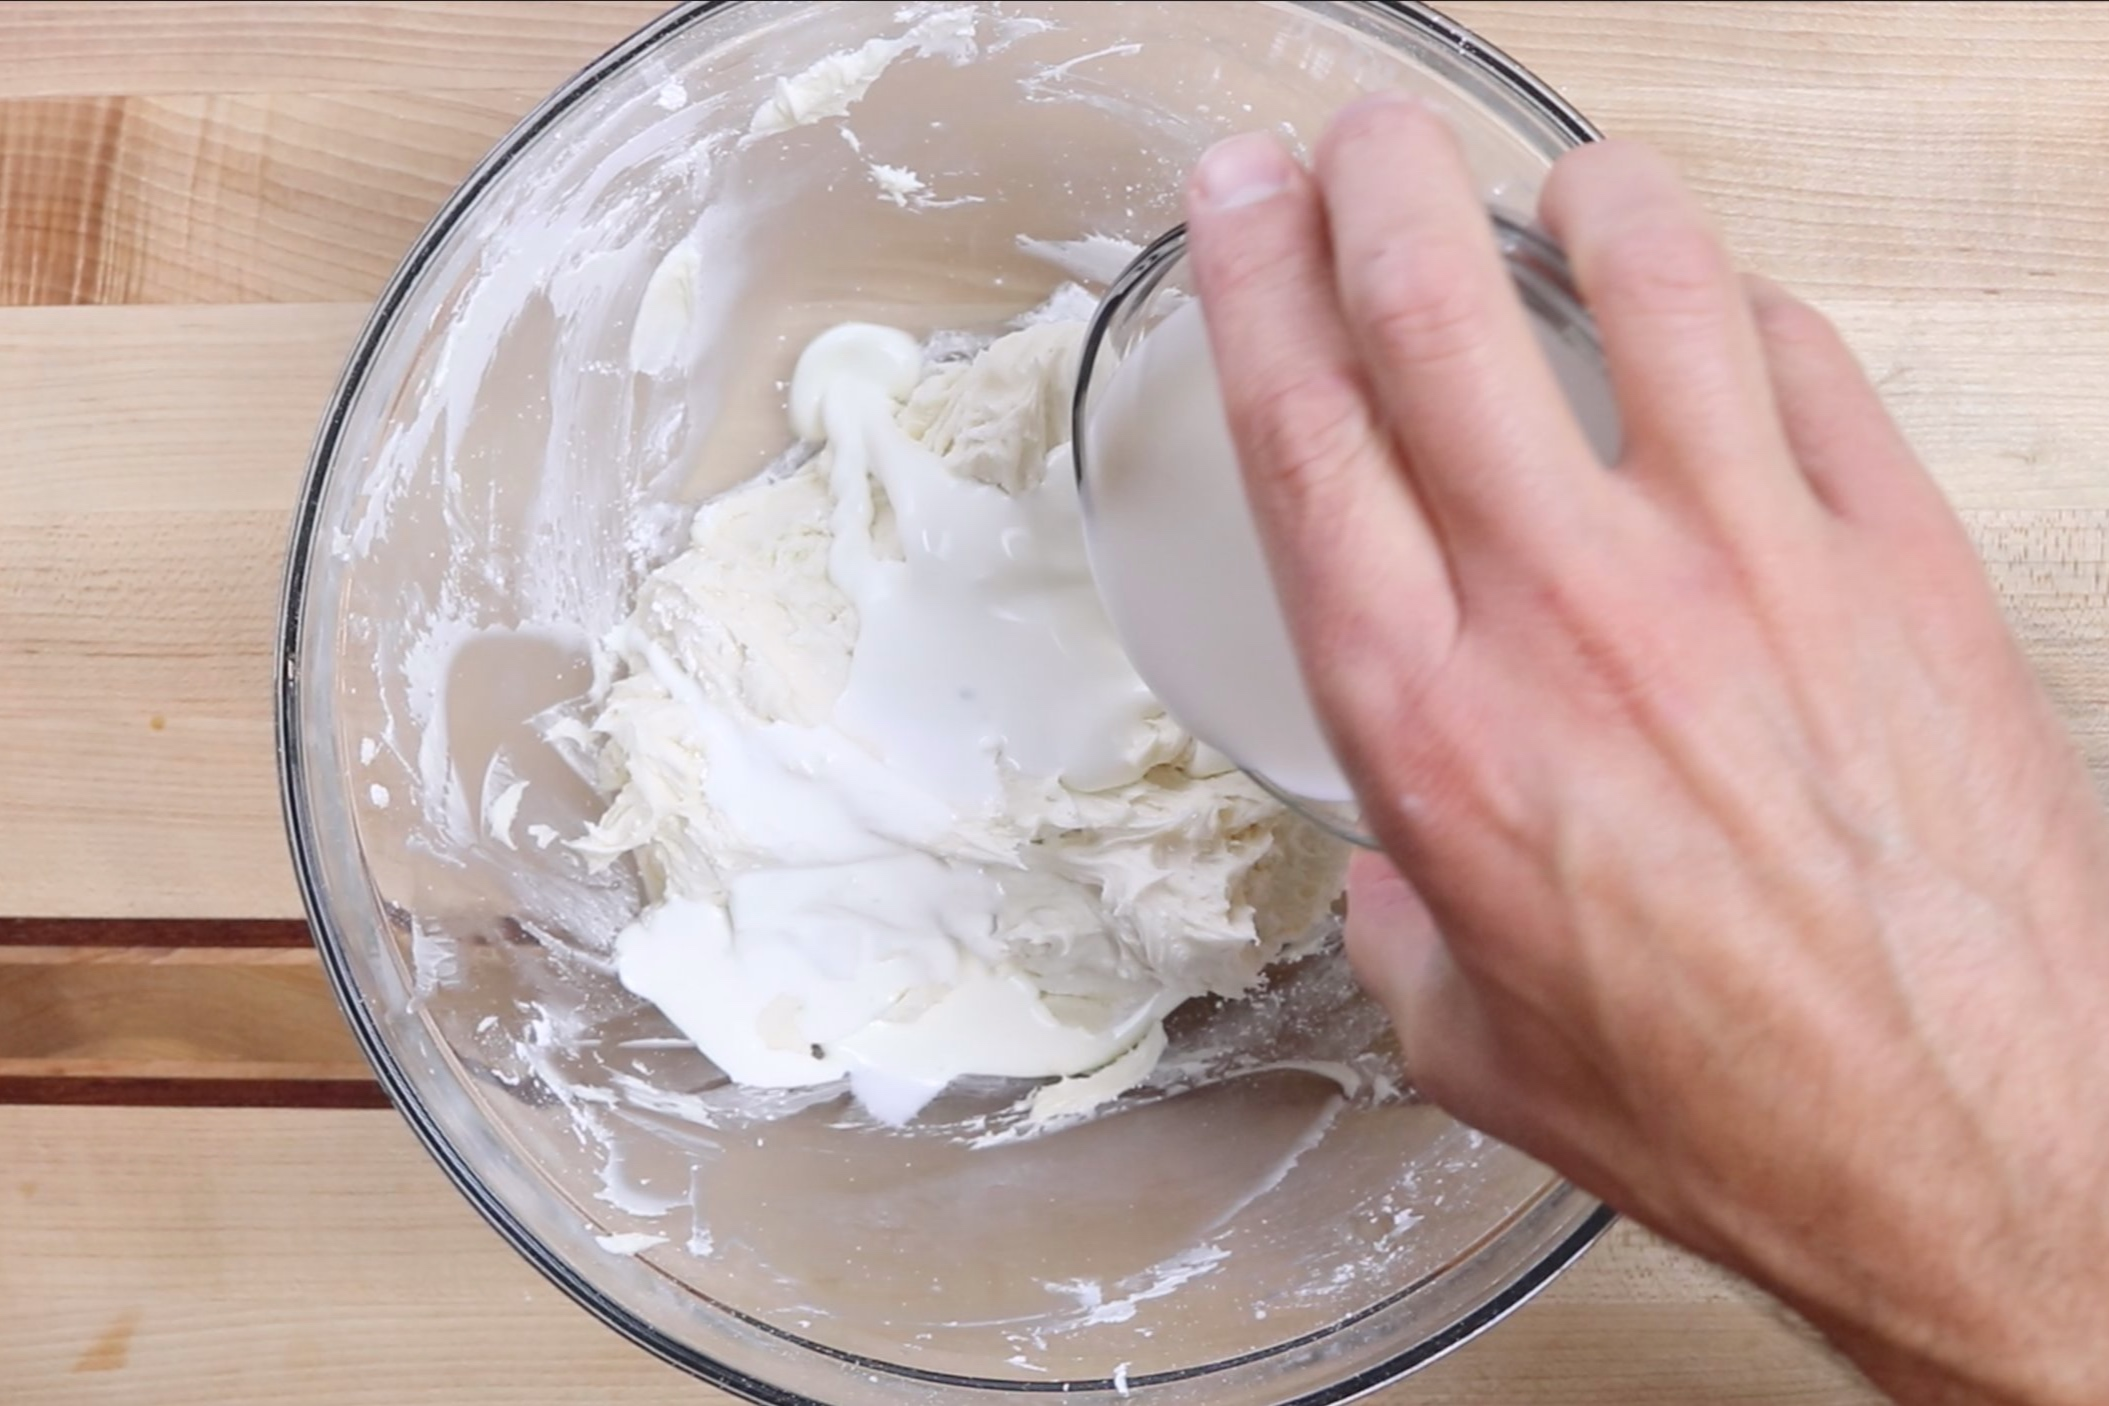 4. Add half of the heavy cream and mix until combined scraping down the edges when necessary. -